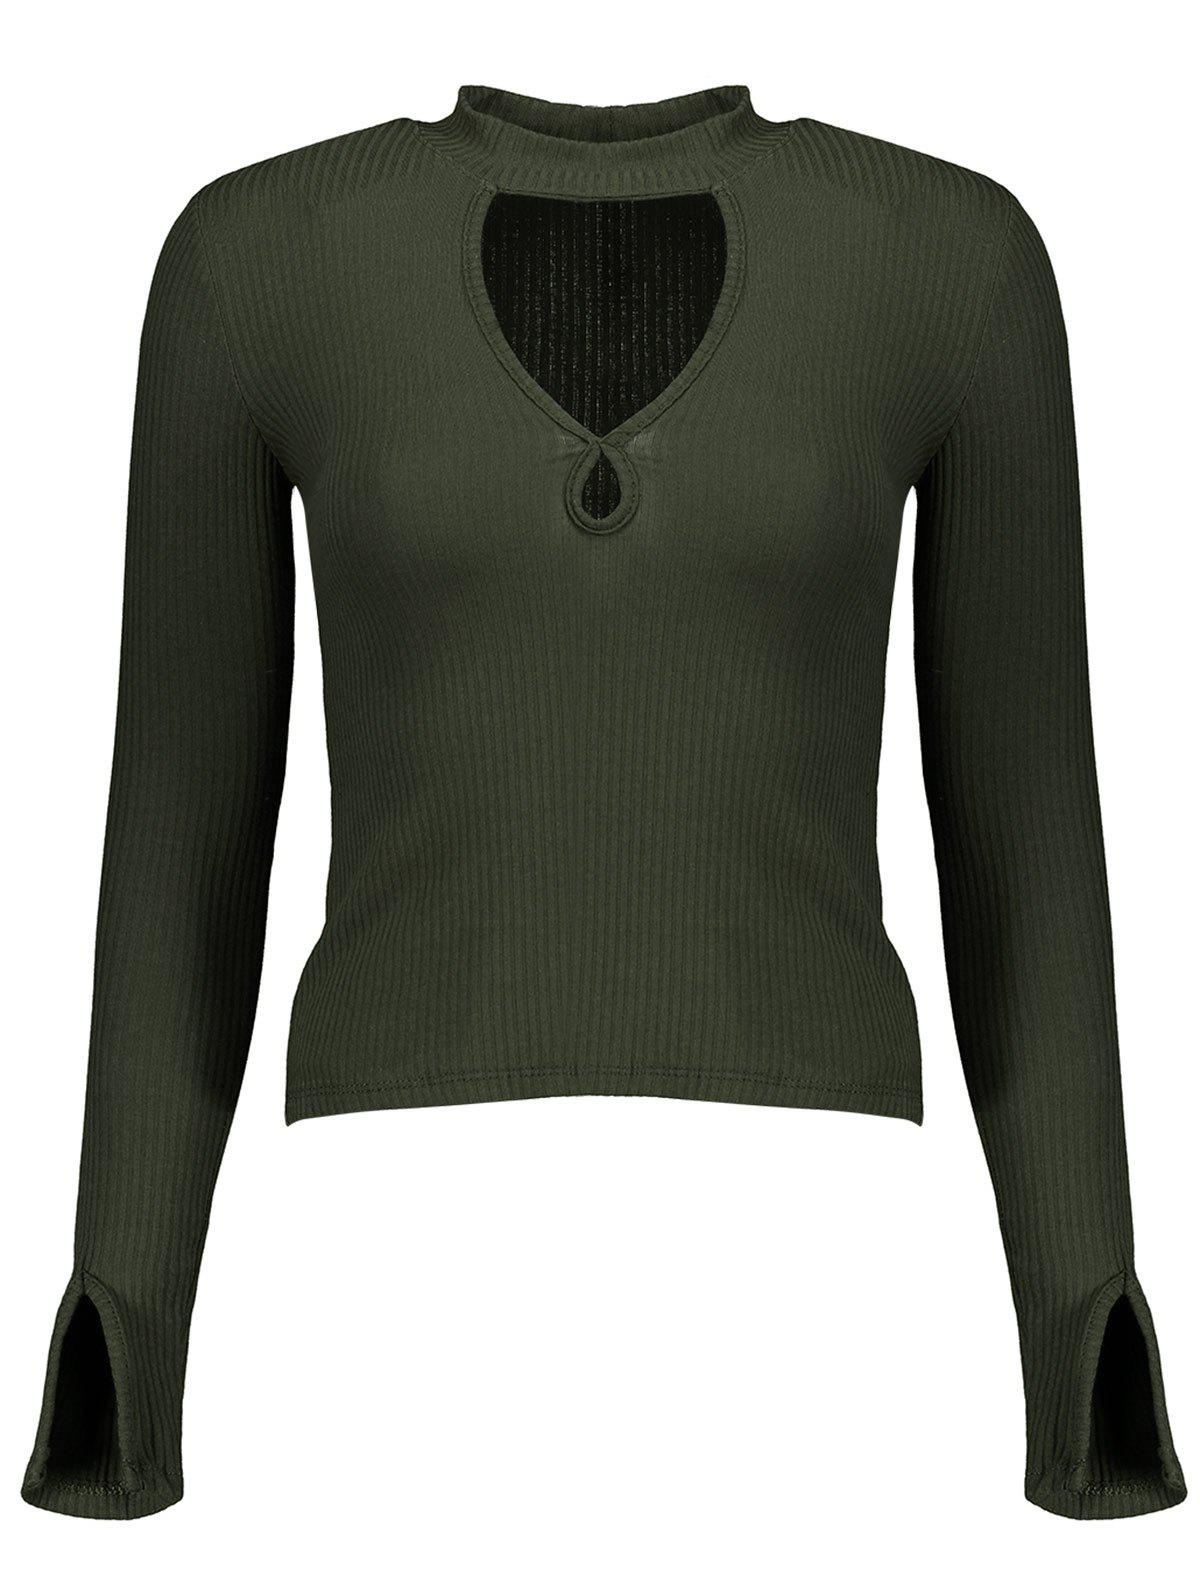 Ribbed Cut Out Knitwear 206473304